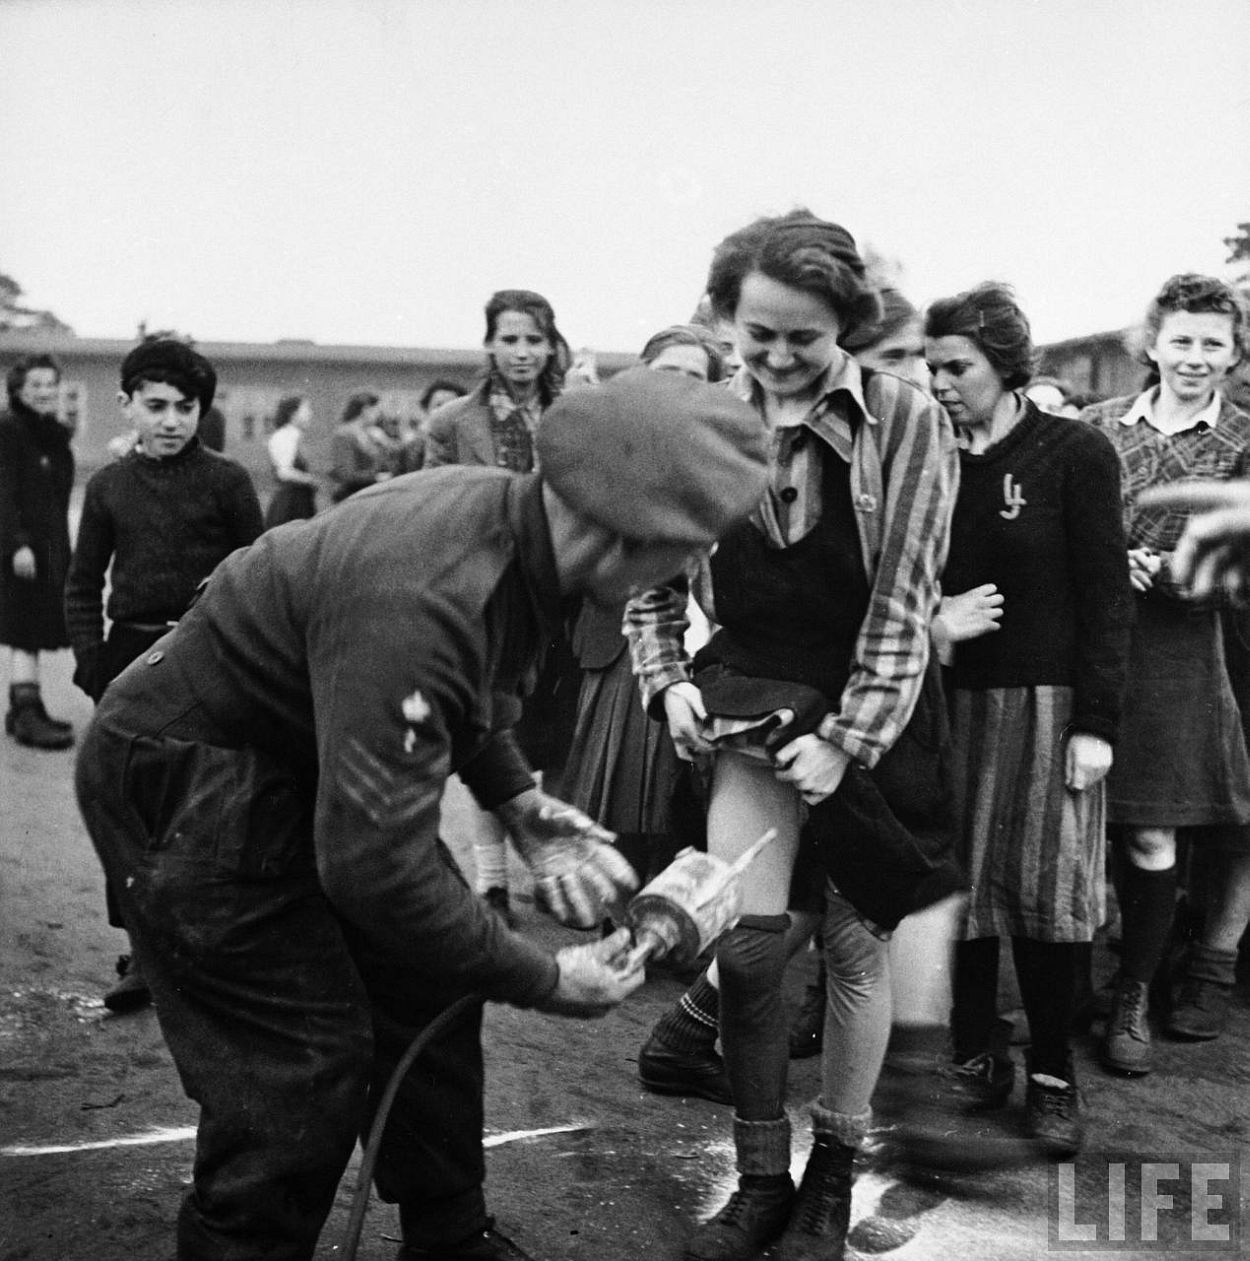 British doctor administers delousing treatment of DDT up the skirt of an embarrased looking female prisoner who is among the 60,000 prisoners just released from Bergen Belsen concentration camp after its liberation by Allied forces.